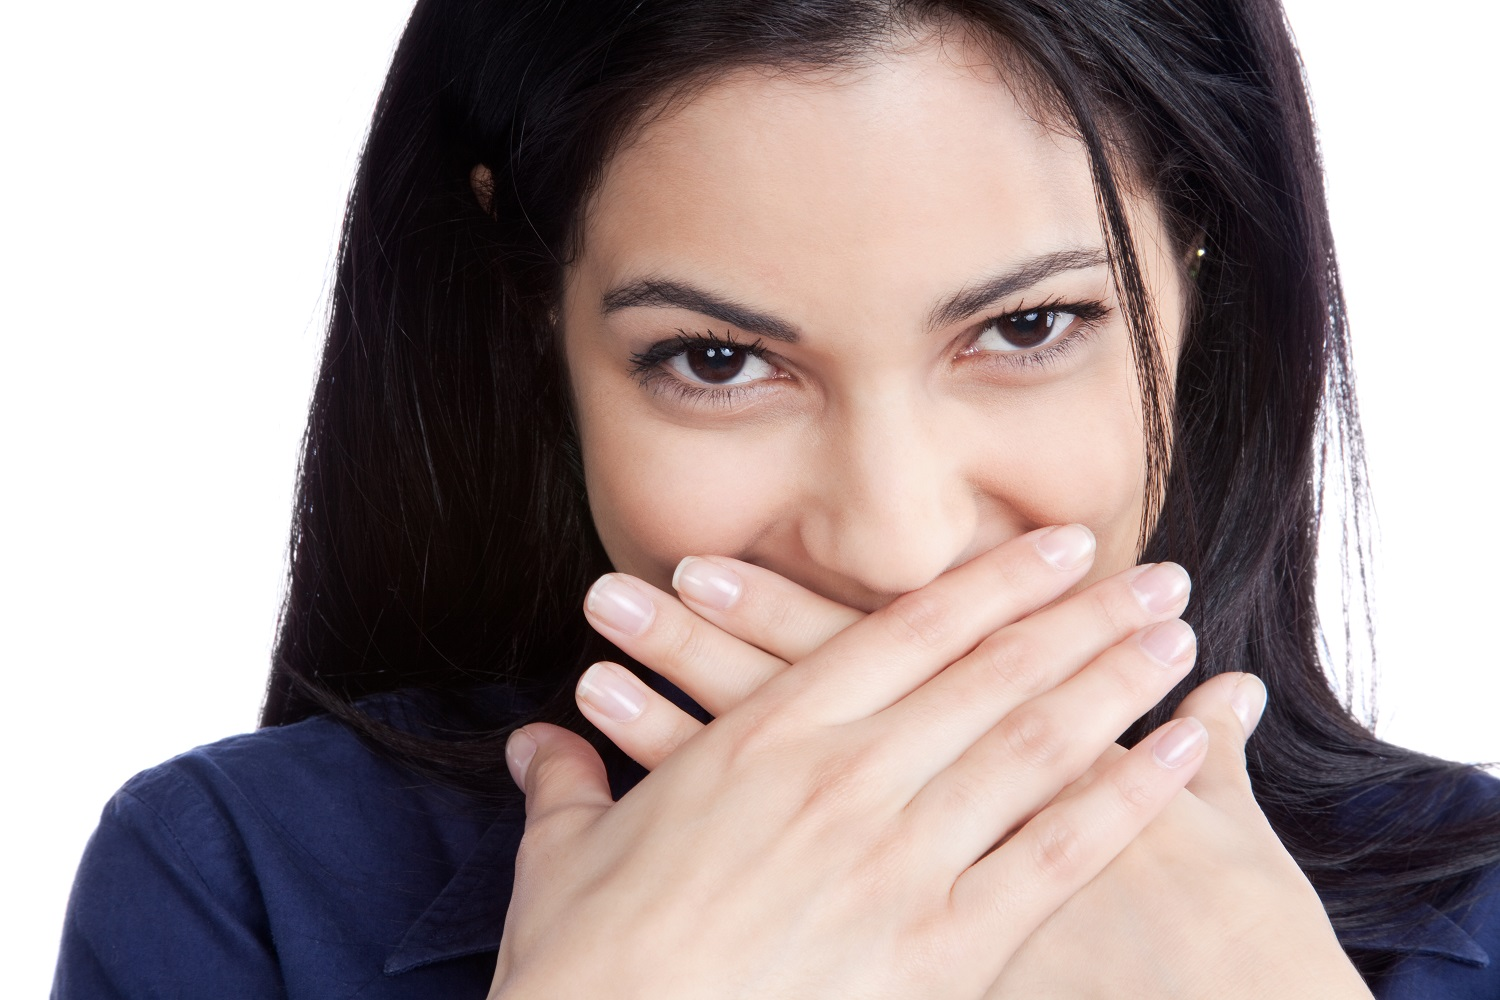 Don't hide your smile - Imperial Dental Center, Sugar Land, TX